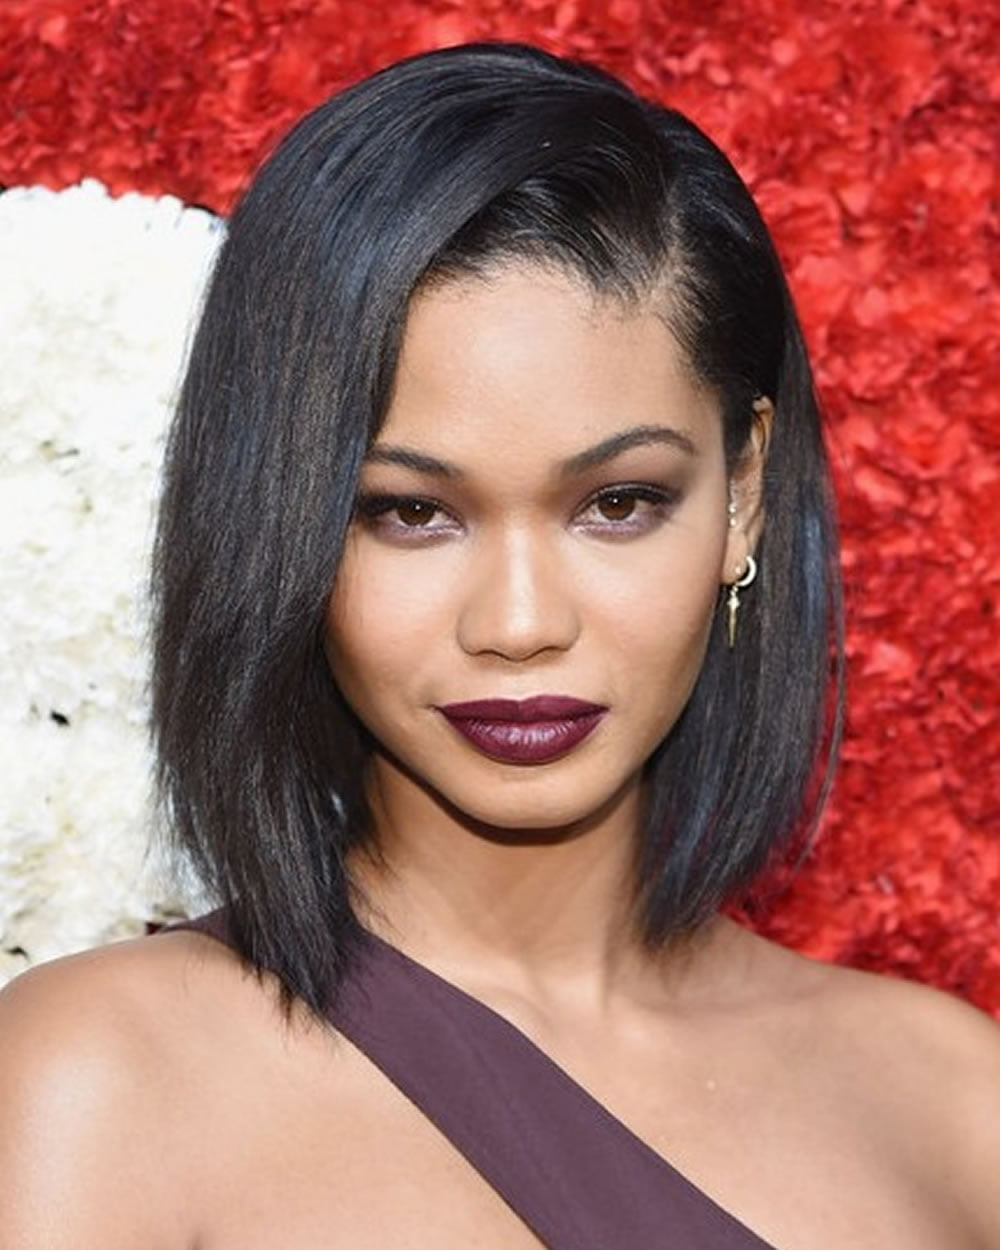 Hairstyle Of Girl 2018: Short Bob Hair For African-American Women 2018-2019